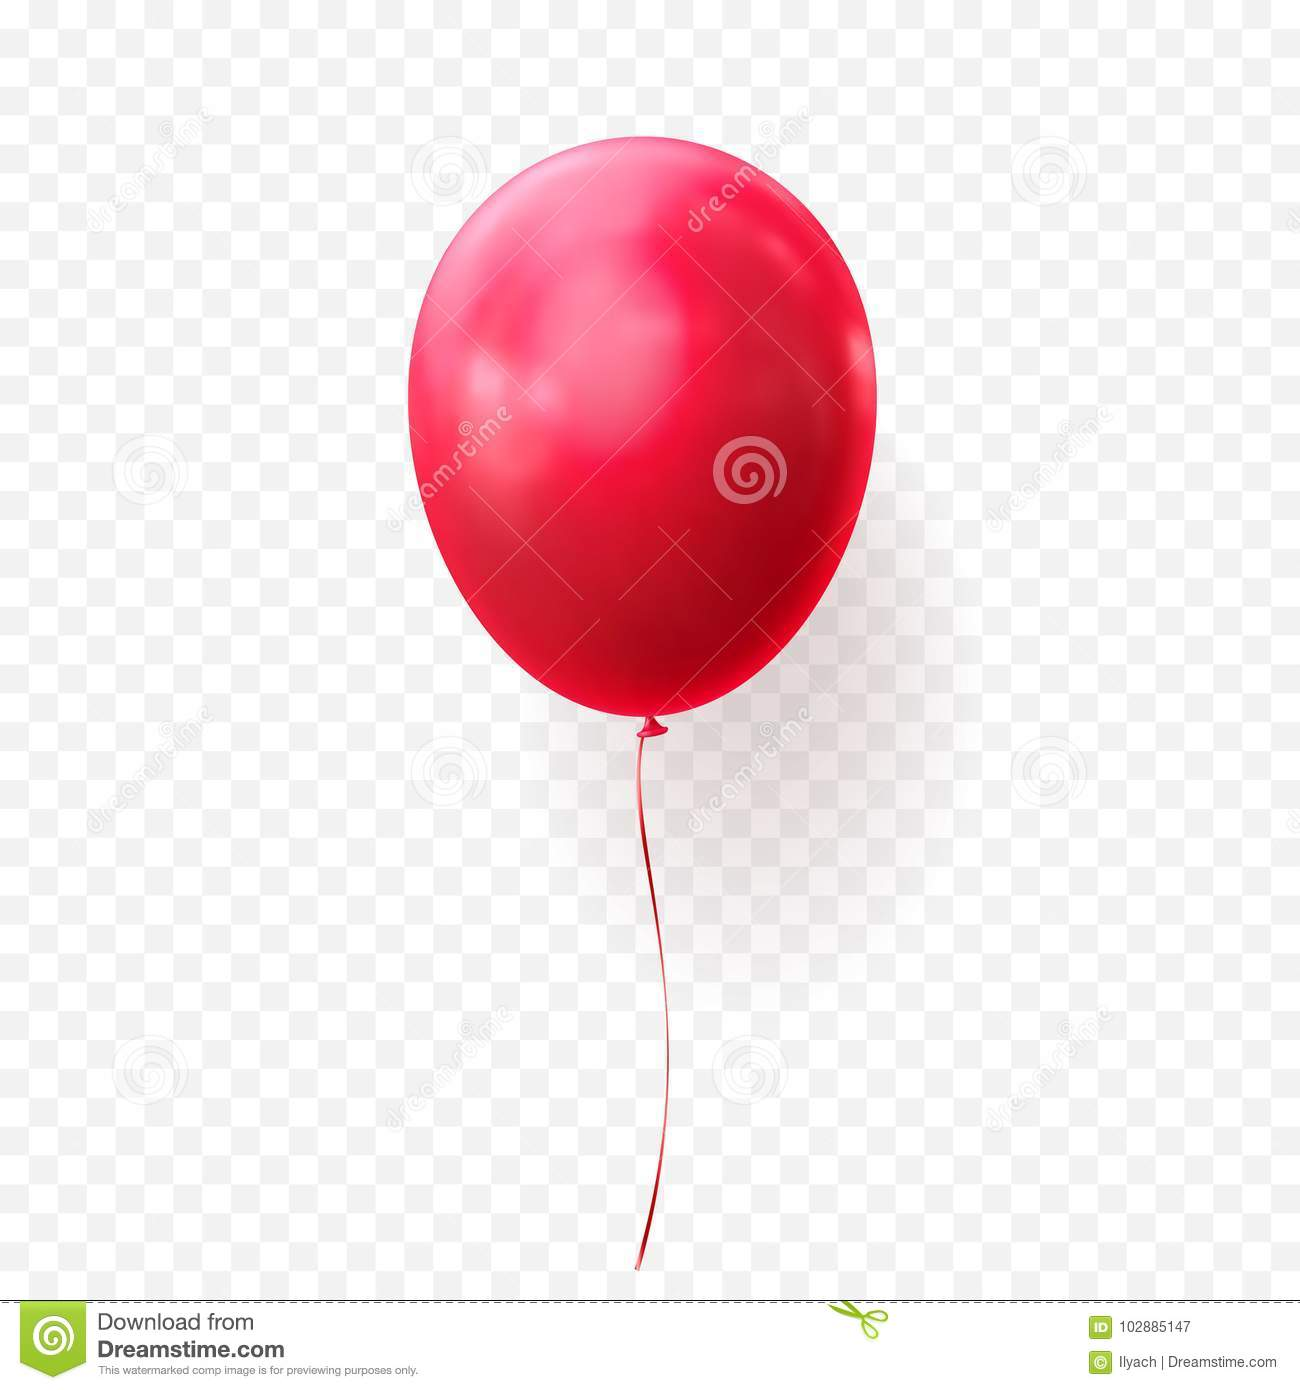 Pennywise Hintergrund: Red Balloon Vector Transparent Background Glossy Realistic